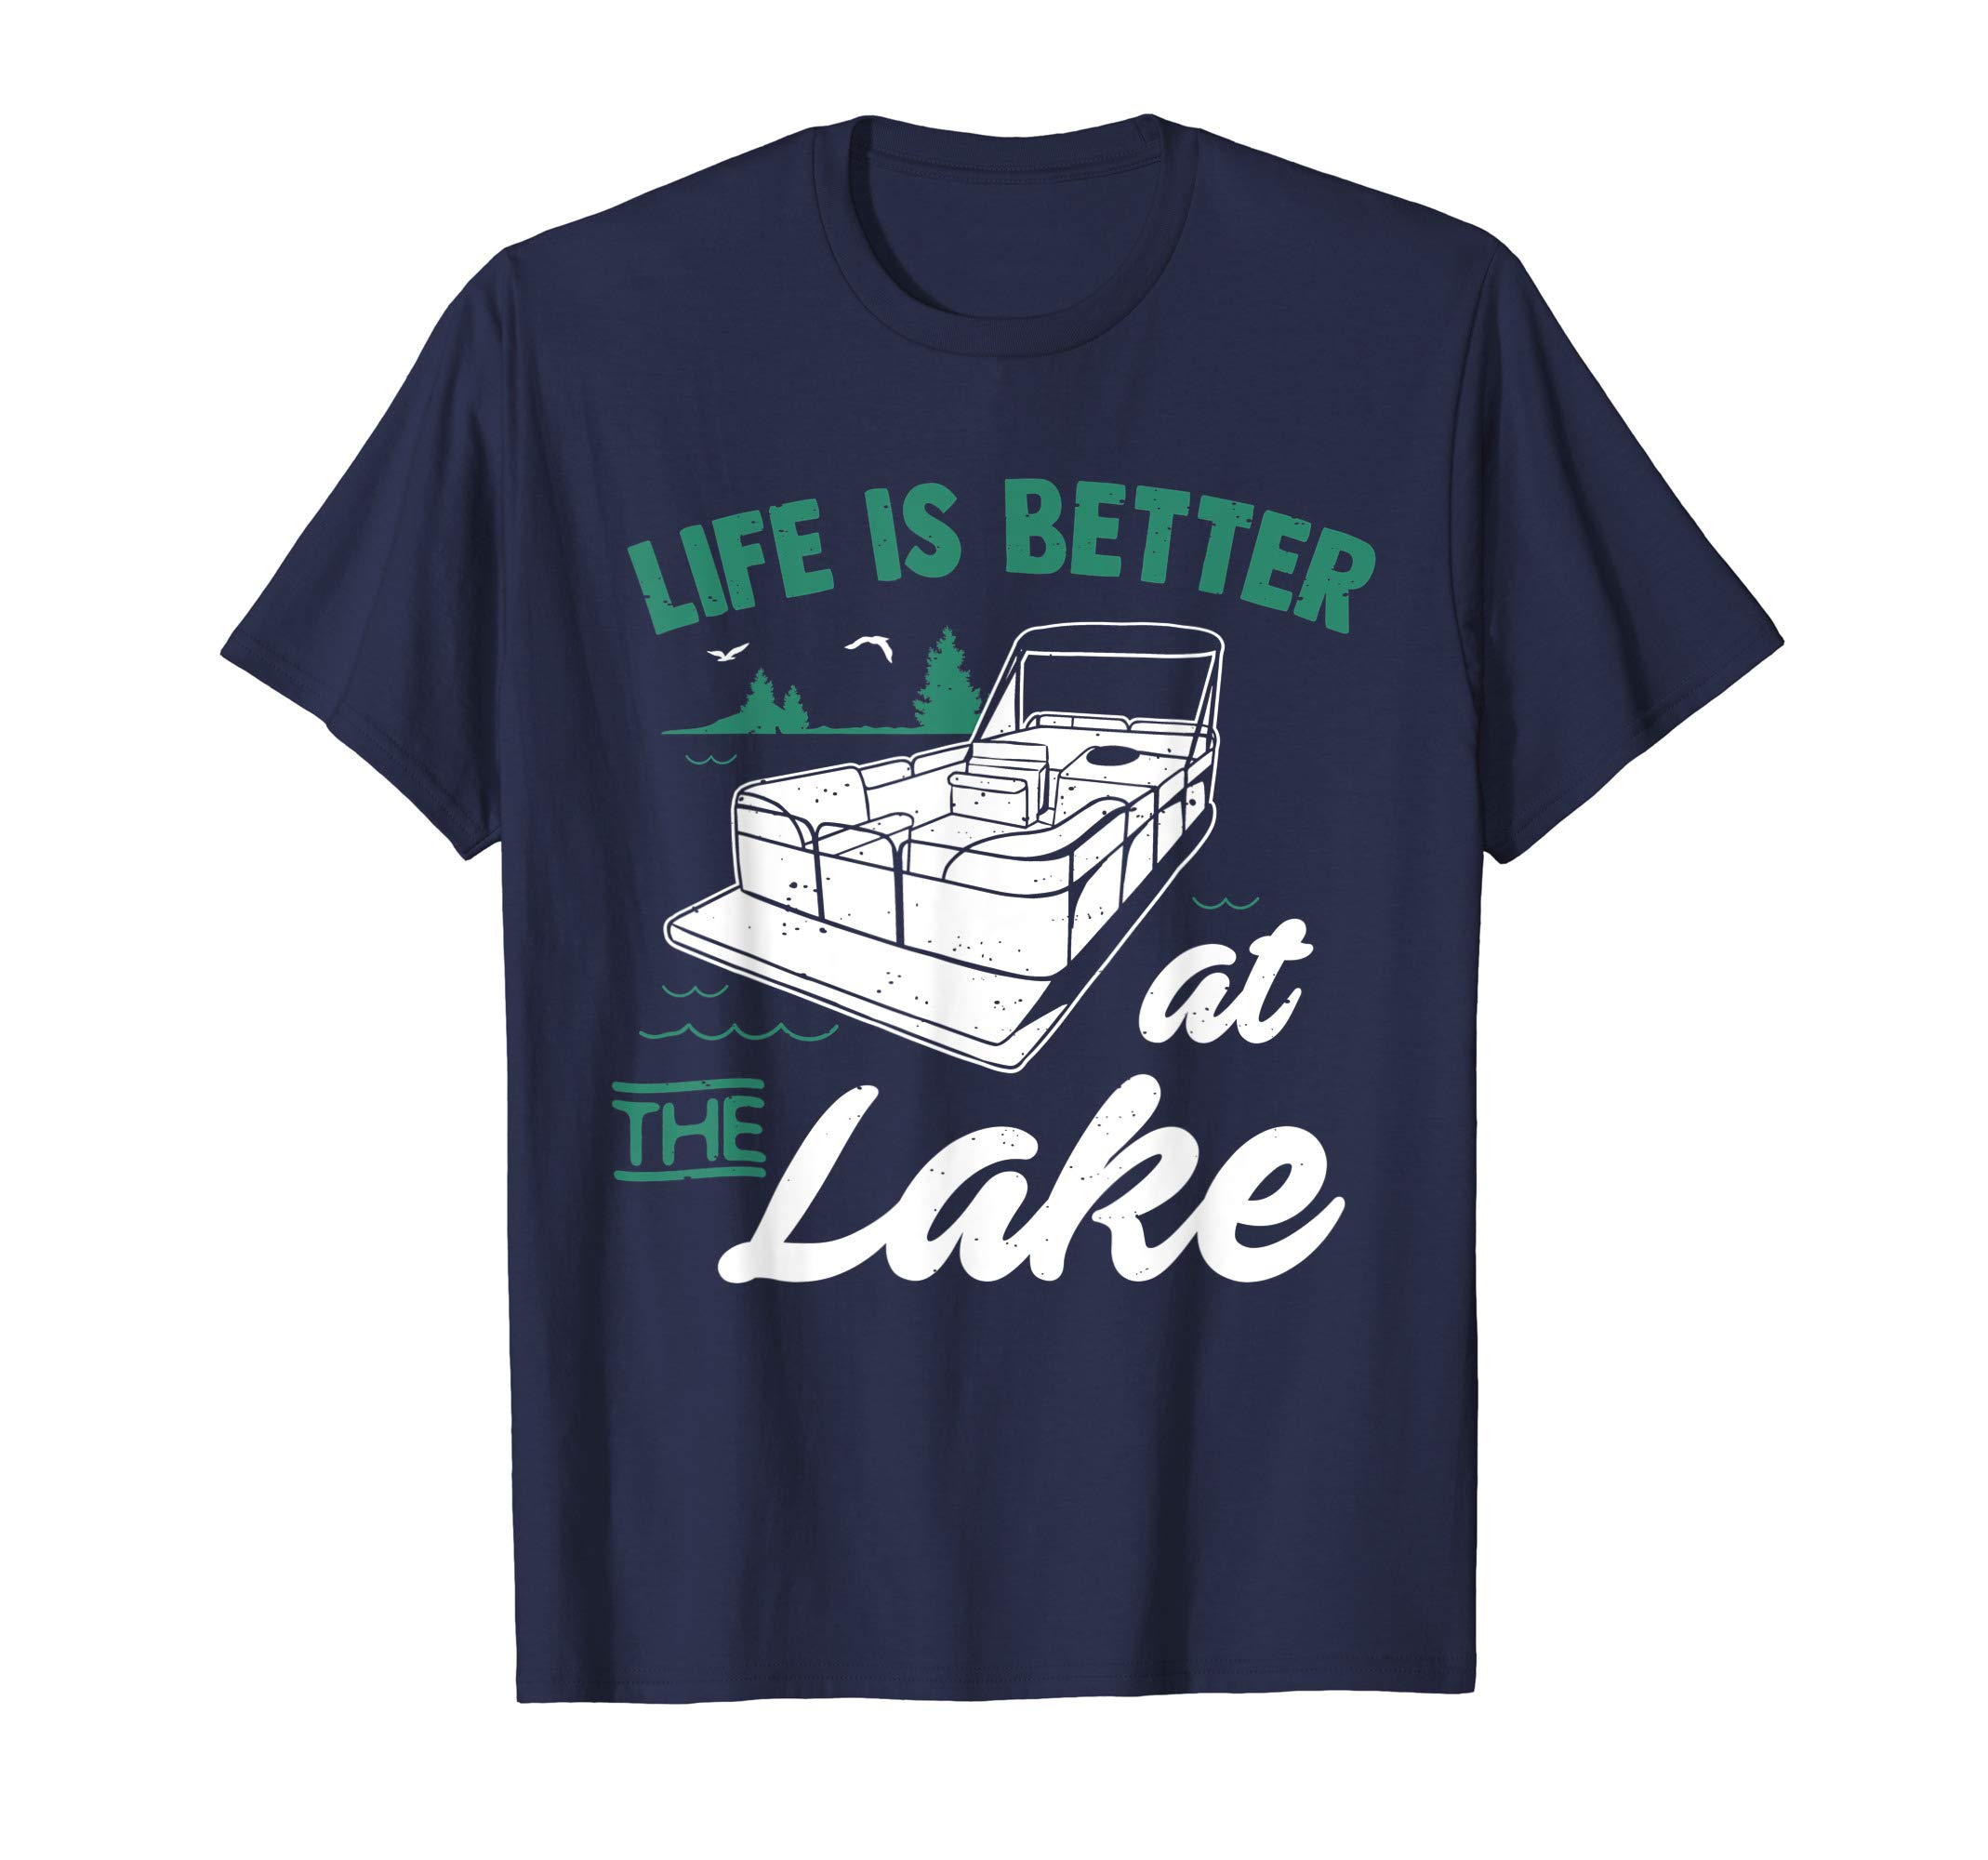 Life Is Better At The Lake - Pontoon Boat Gift T-Shirt by Pontoon Boat and Motor boating Shirts